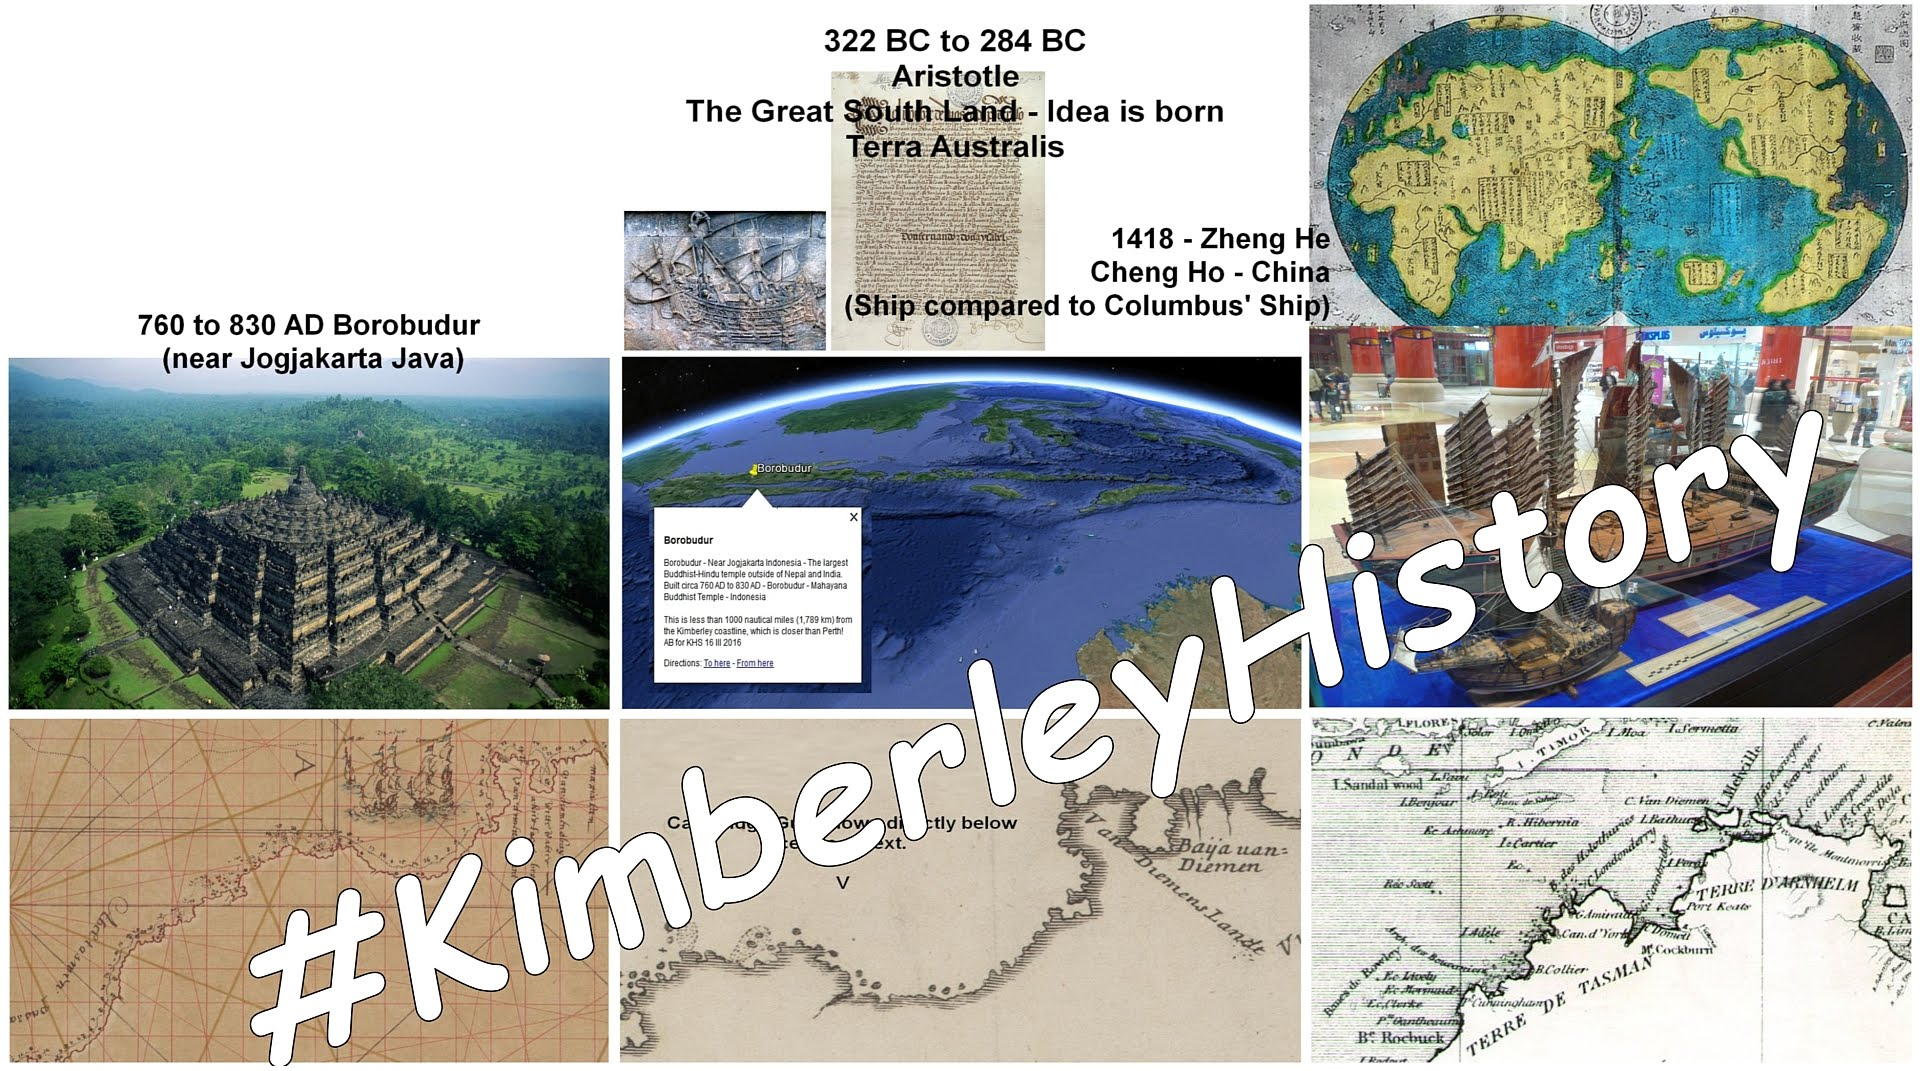 Images of some very early possible Kimberley History - Borobudur Indonesia built circa 760-830 AD - Cheng Ho China circa 1418 - Tasman - 1st to chart the Kimberley Coast 1644 - Montage by AB for KHS 30 III 2017